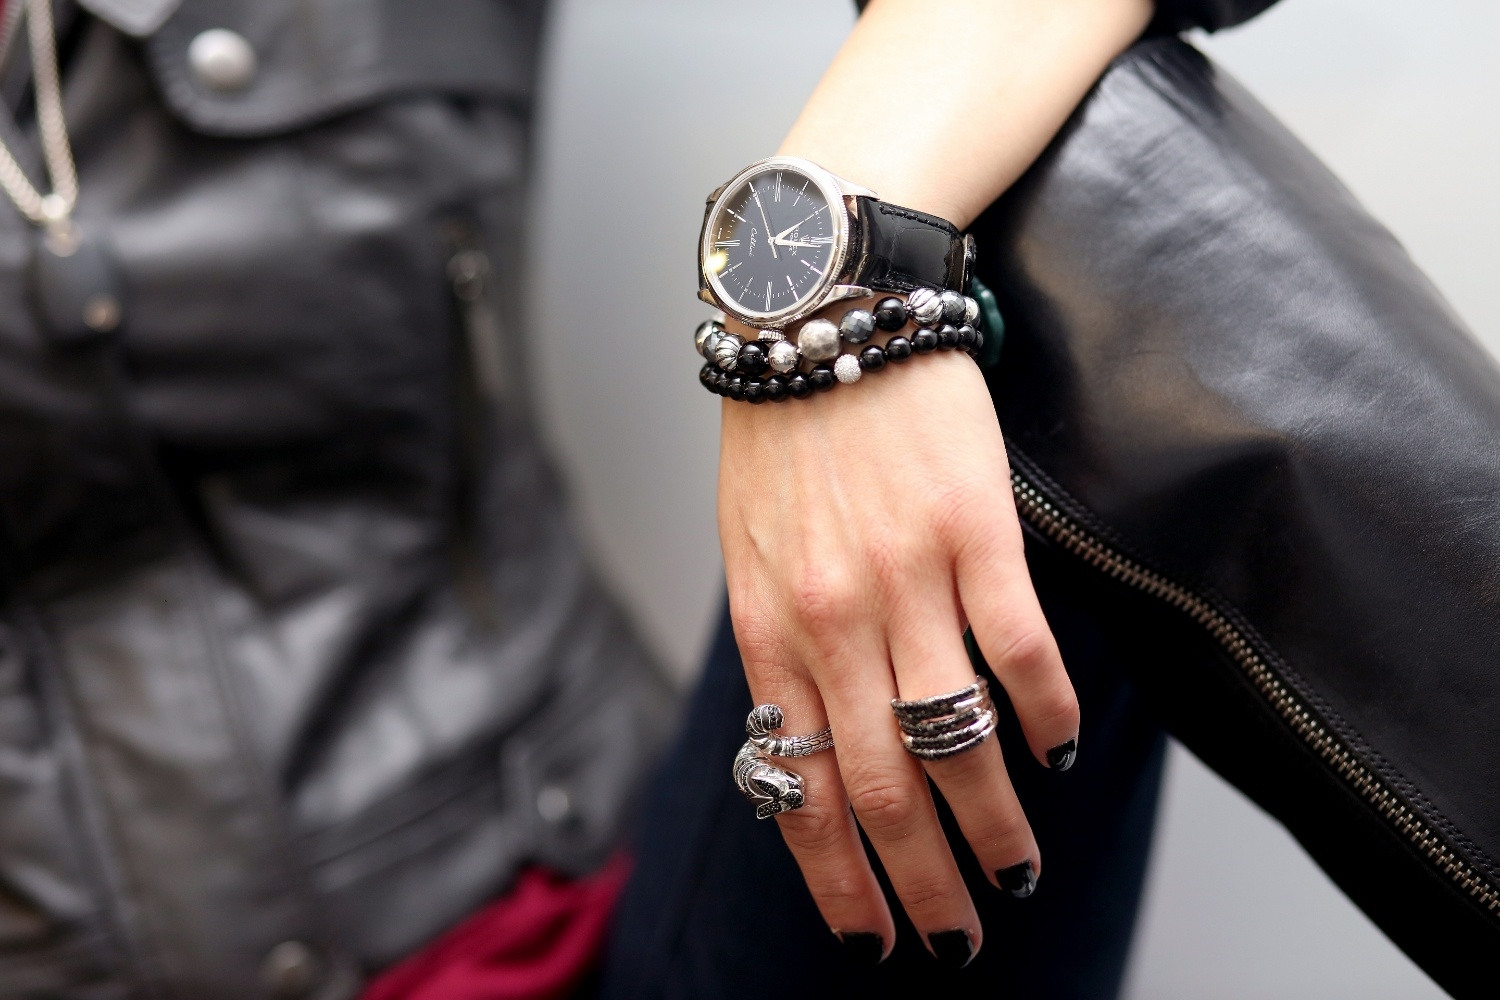 Rock and Roll Jewelry - Edgy Fashion Jewelry That Will Rock Your World